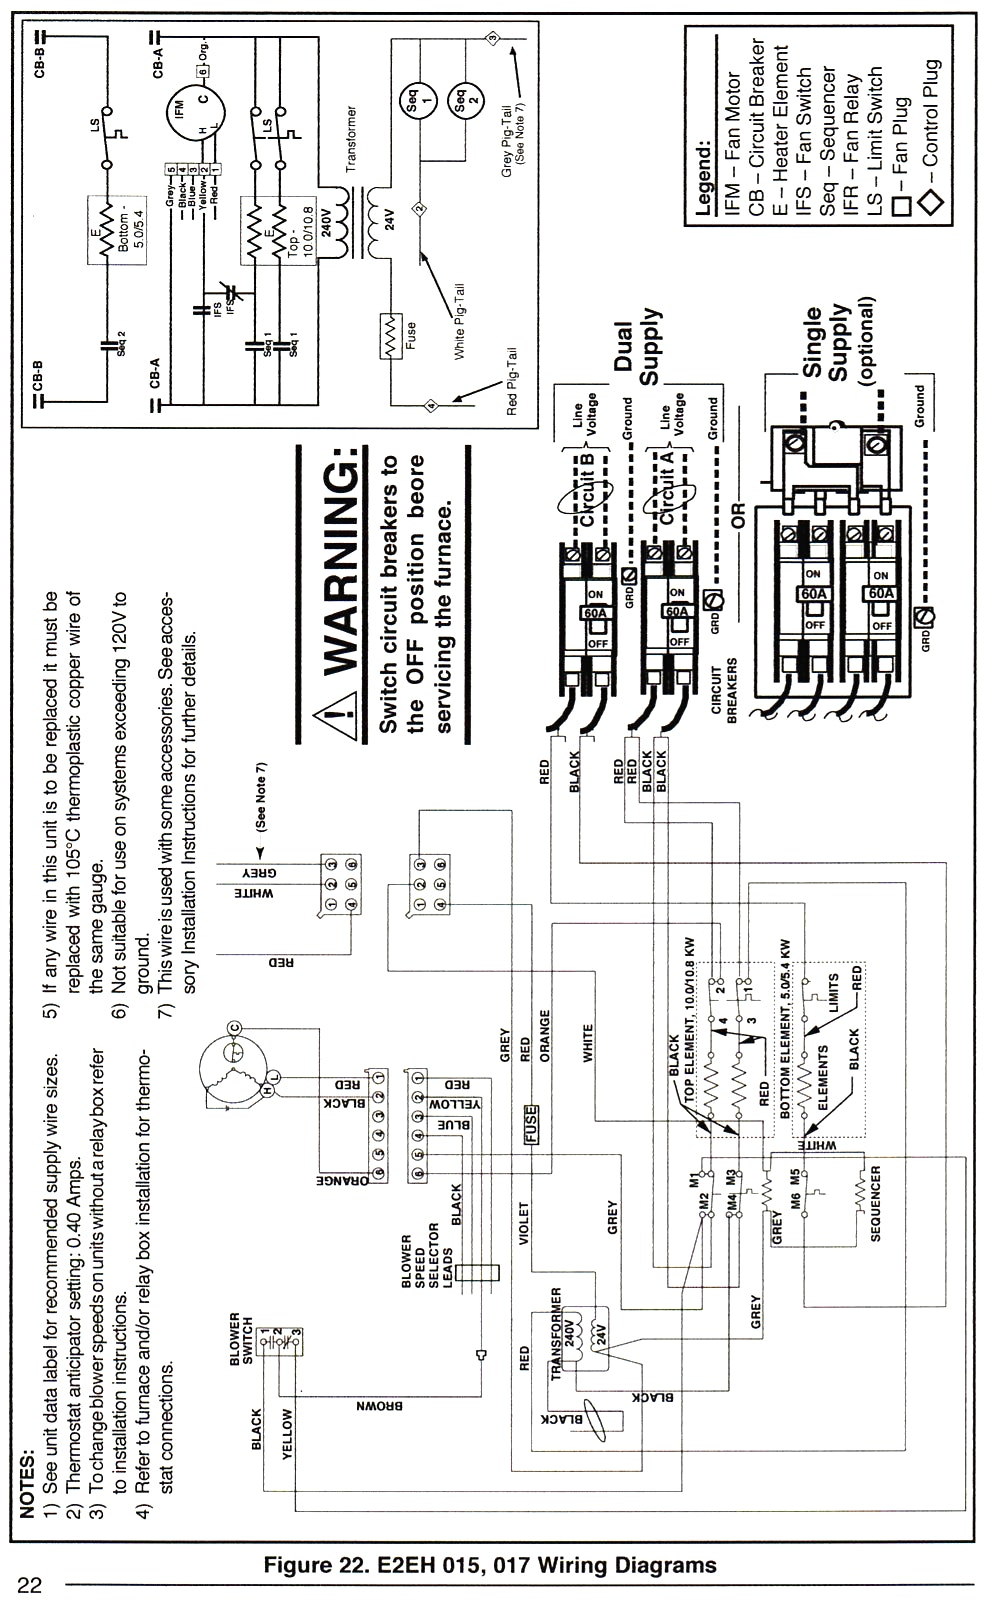 Intertherm Heat Pump Wiring Diagram Collection on kitchen wire diagram, iron wire diagram, fridge wire diagram, ups power systems diagram, central air wire diagram, hvac wire diagram, ladder wire diagram, washer wire diagram, thermostat wire diagram, freezer wire diagram, heat wire diagram, clothes dryer wire diagram, range wire diagram, five wire diagram, tv antenna wire diagram, garage wire diagram, septic wire diagram, a/c wire diagram, refrigeration wire diagram, pump wire diagram,